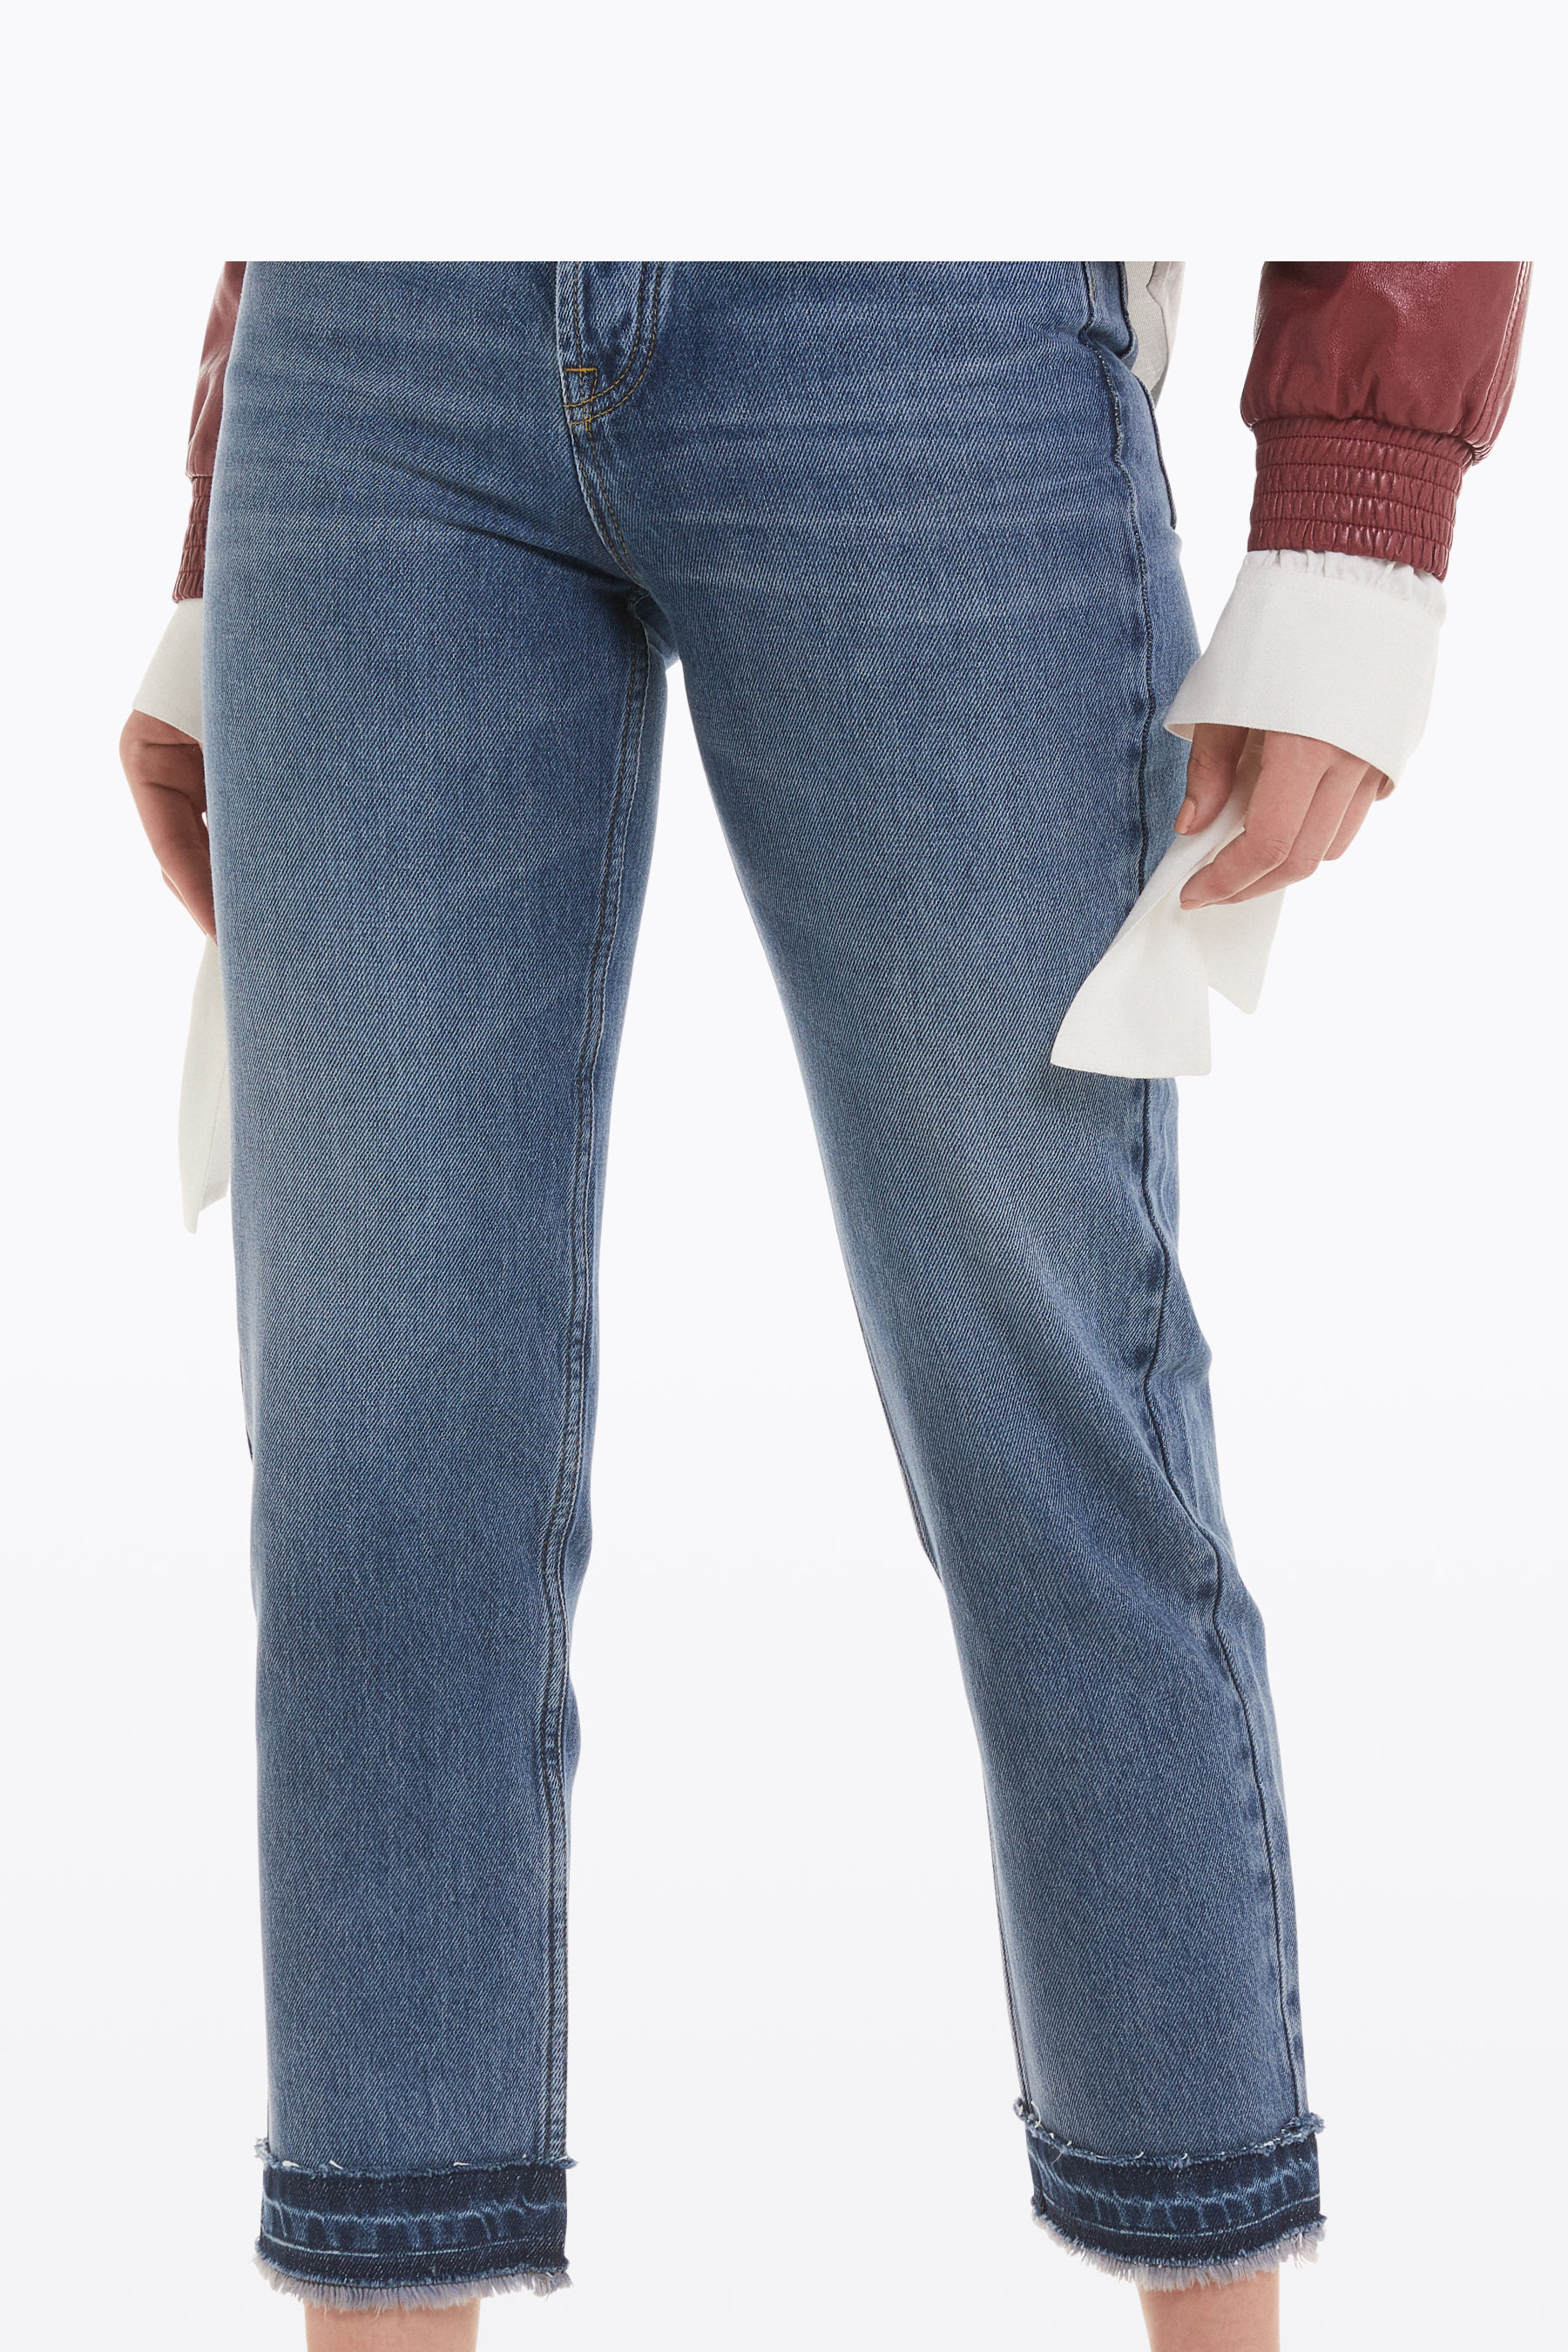 High-waisted, straight-leg jeans